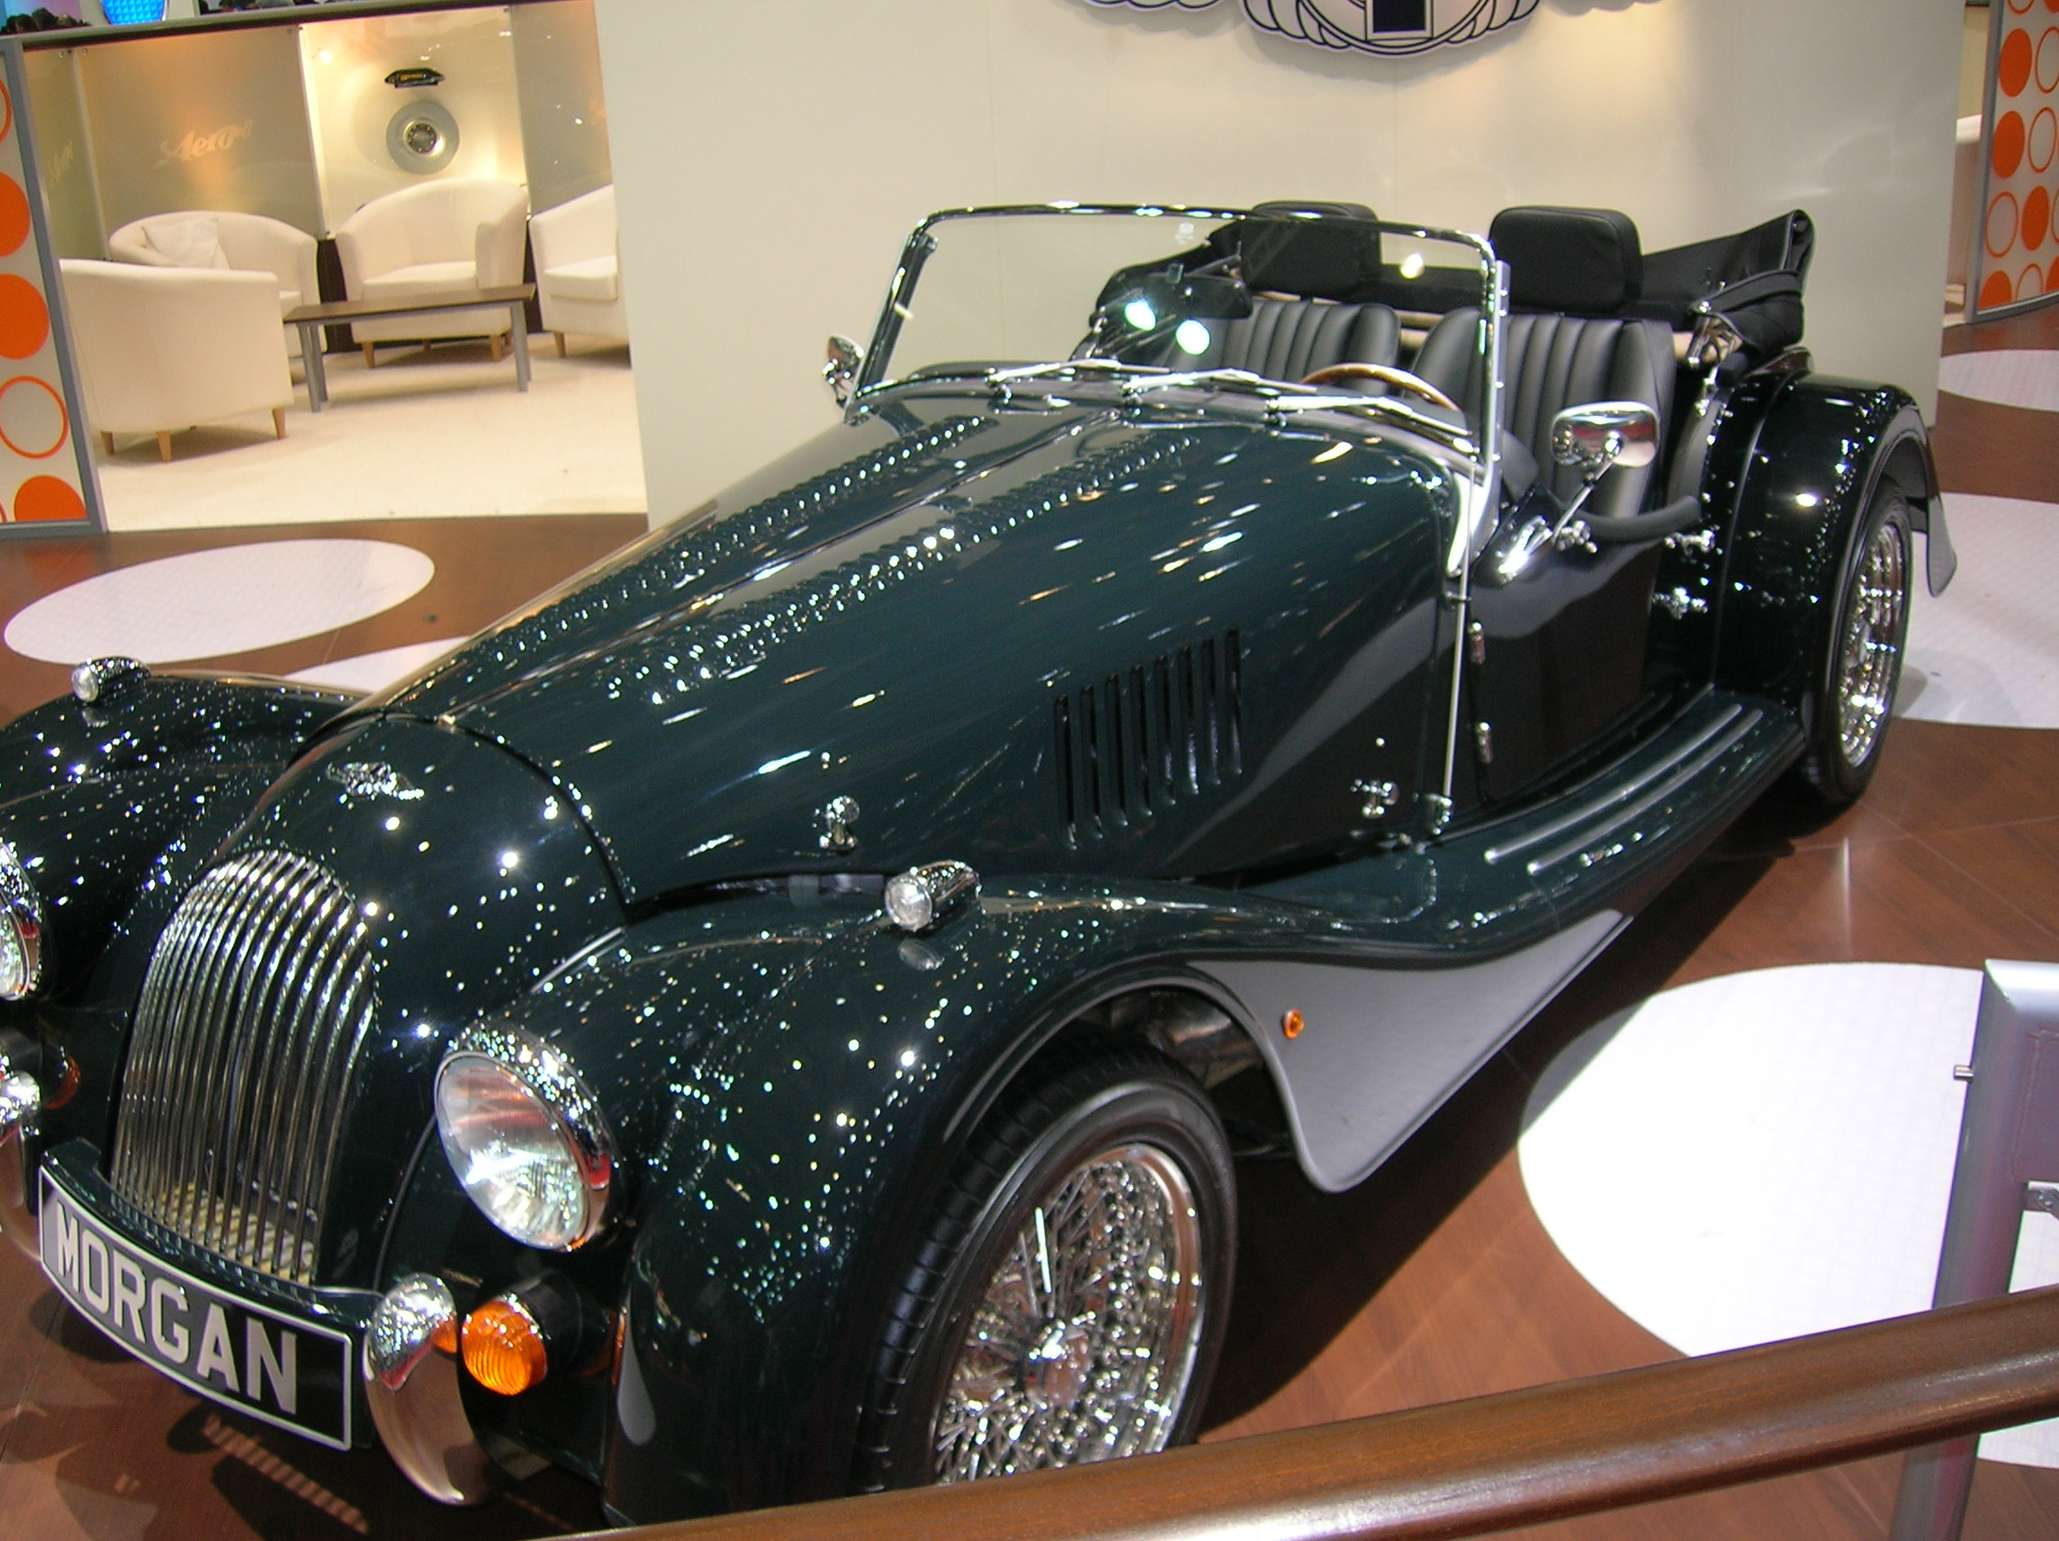 Morgan Roadster #8147531